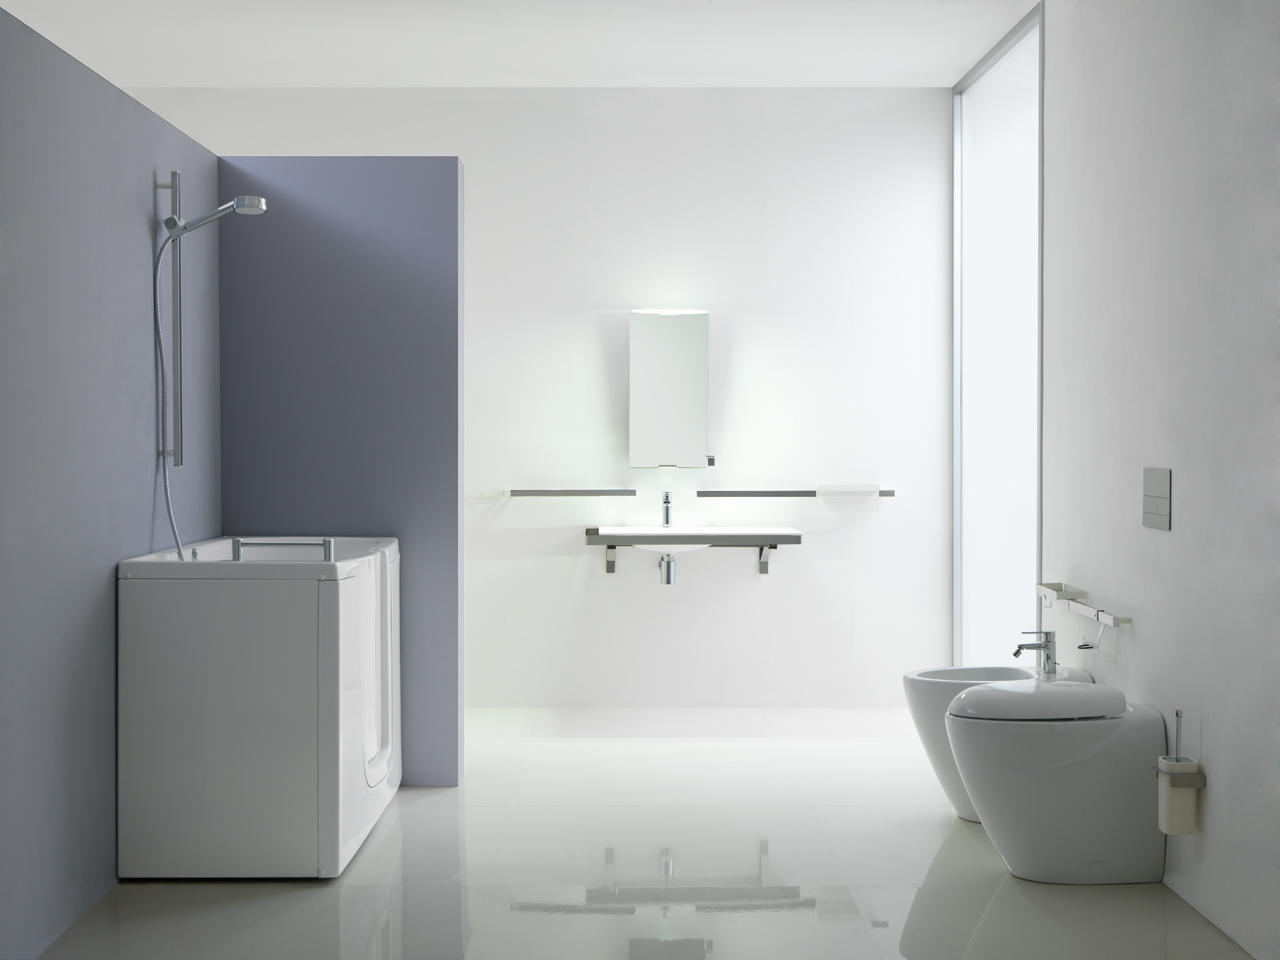 Solution for inclusive bathroom environment